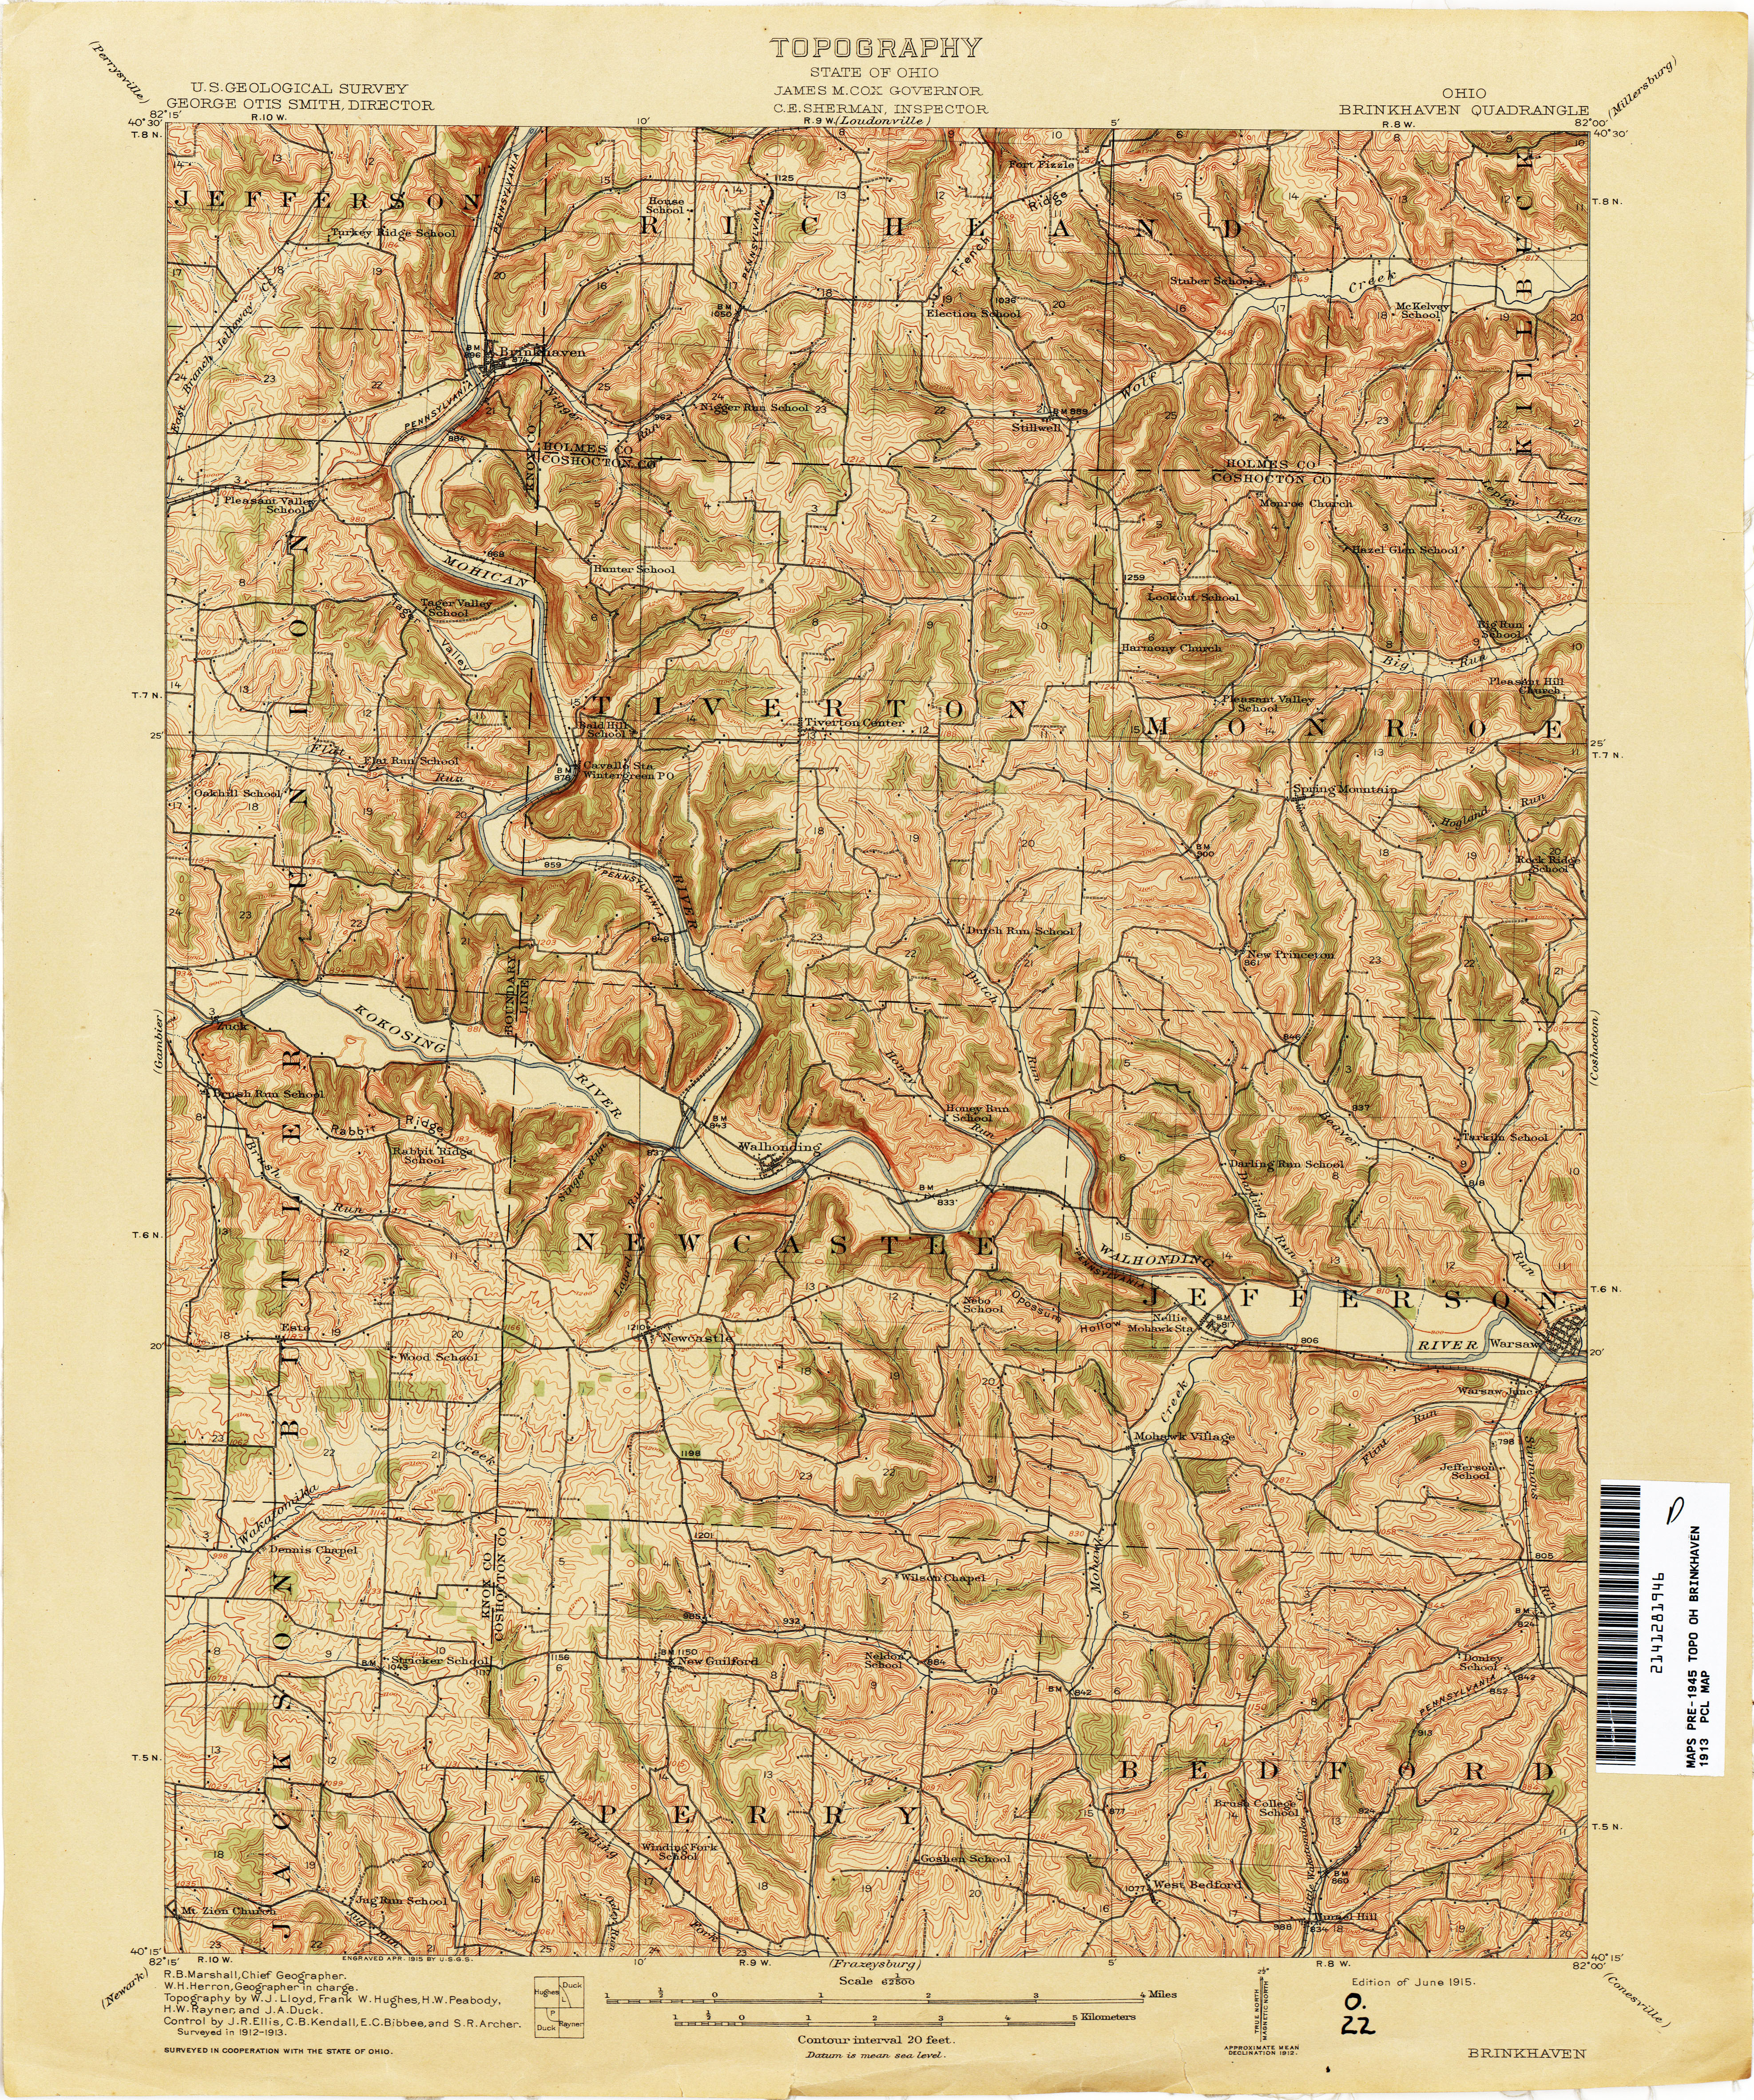 Perrysville Ohio Map.Ohio Historical Topographic Maps Perry Castaneda Map Collection